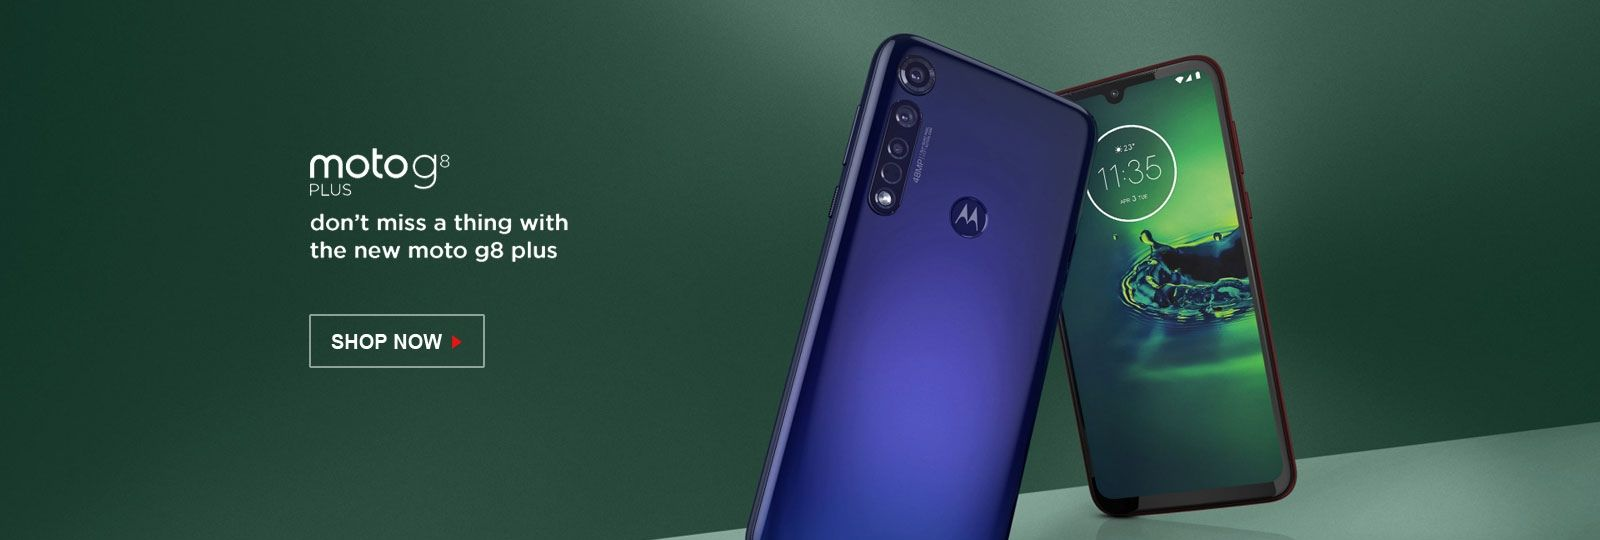 Motorola G8 Plus - Shop Now